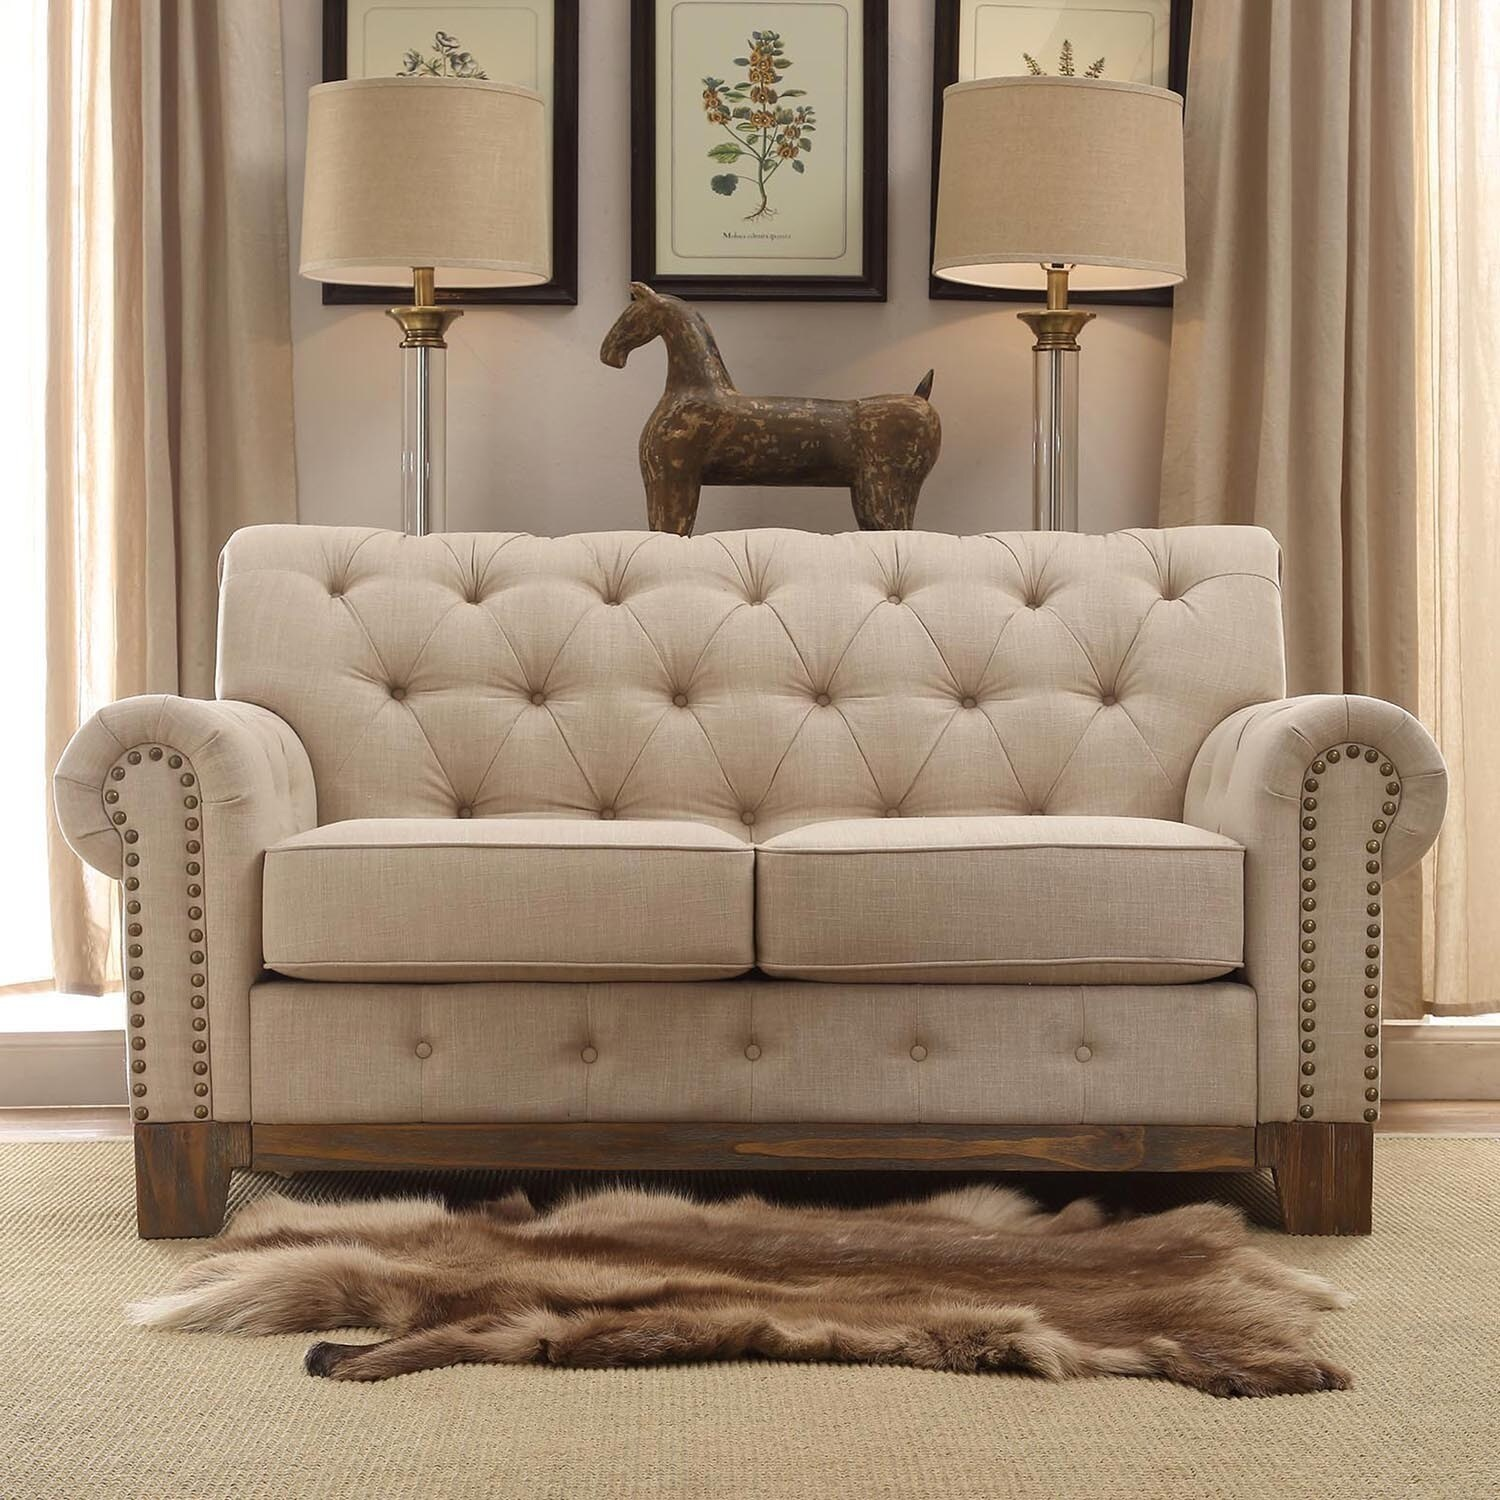 Greenwich Tufted Rolled Arm Nailhead Beige Chesterfield Loveseat By Inspire Q Free Shipping Today 16987019